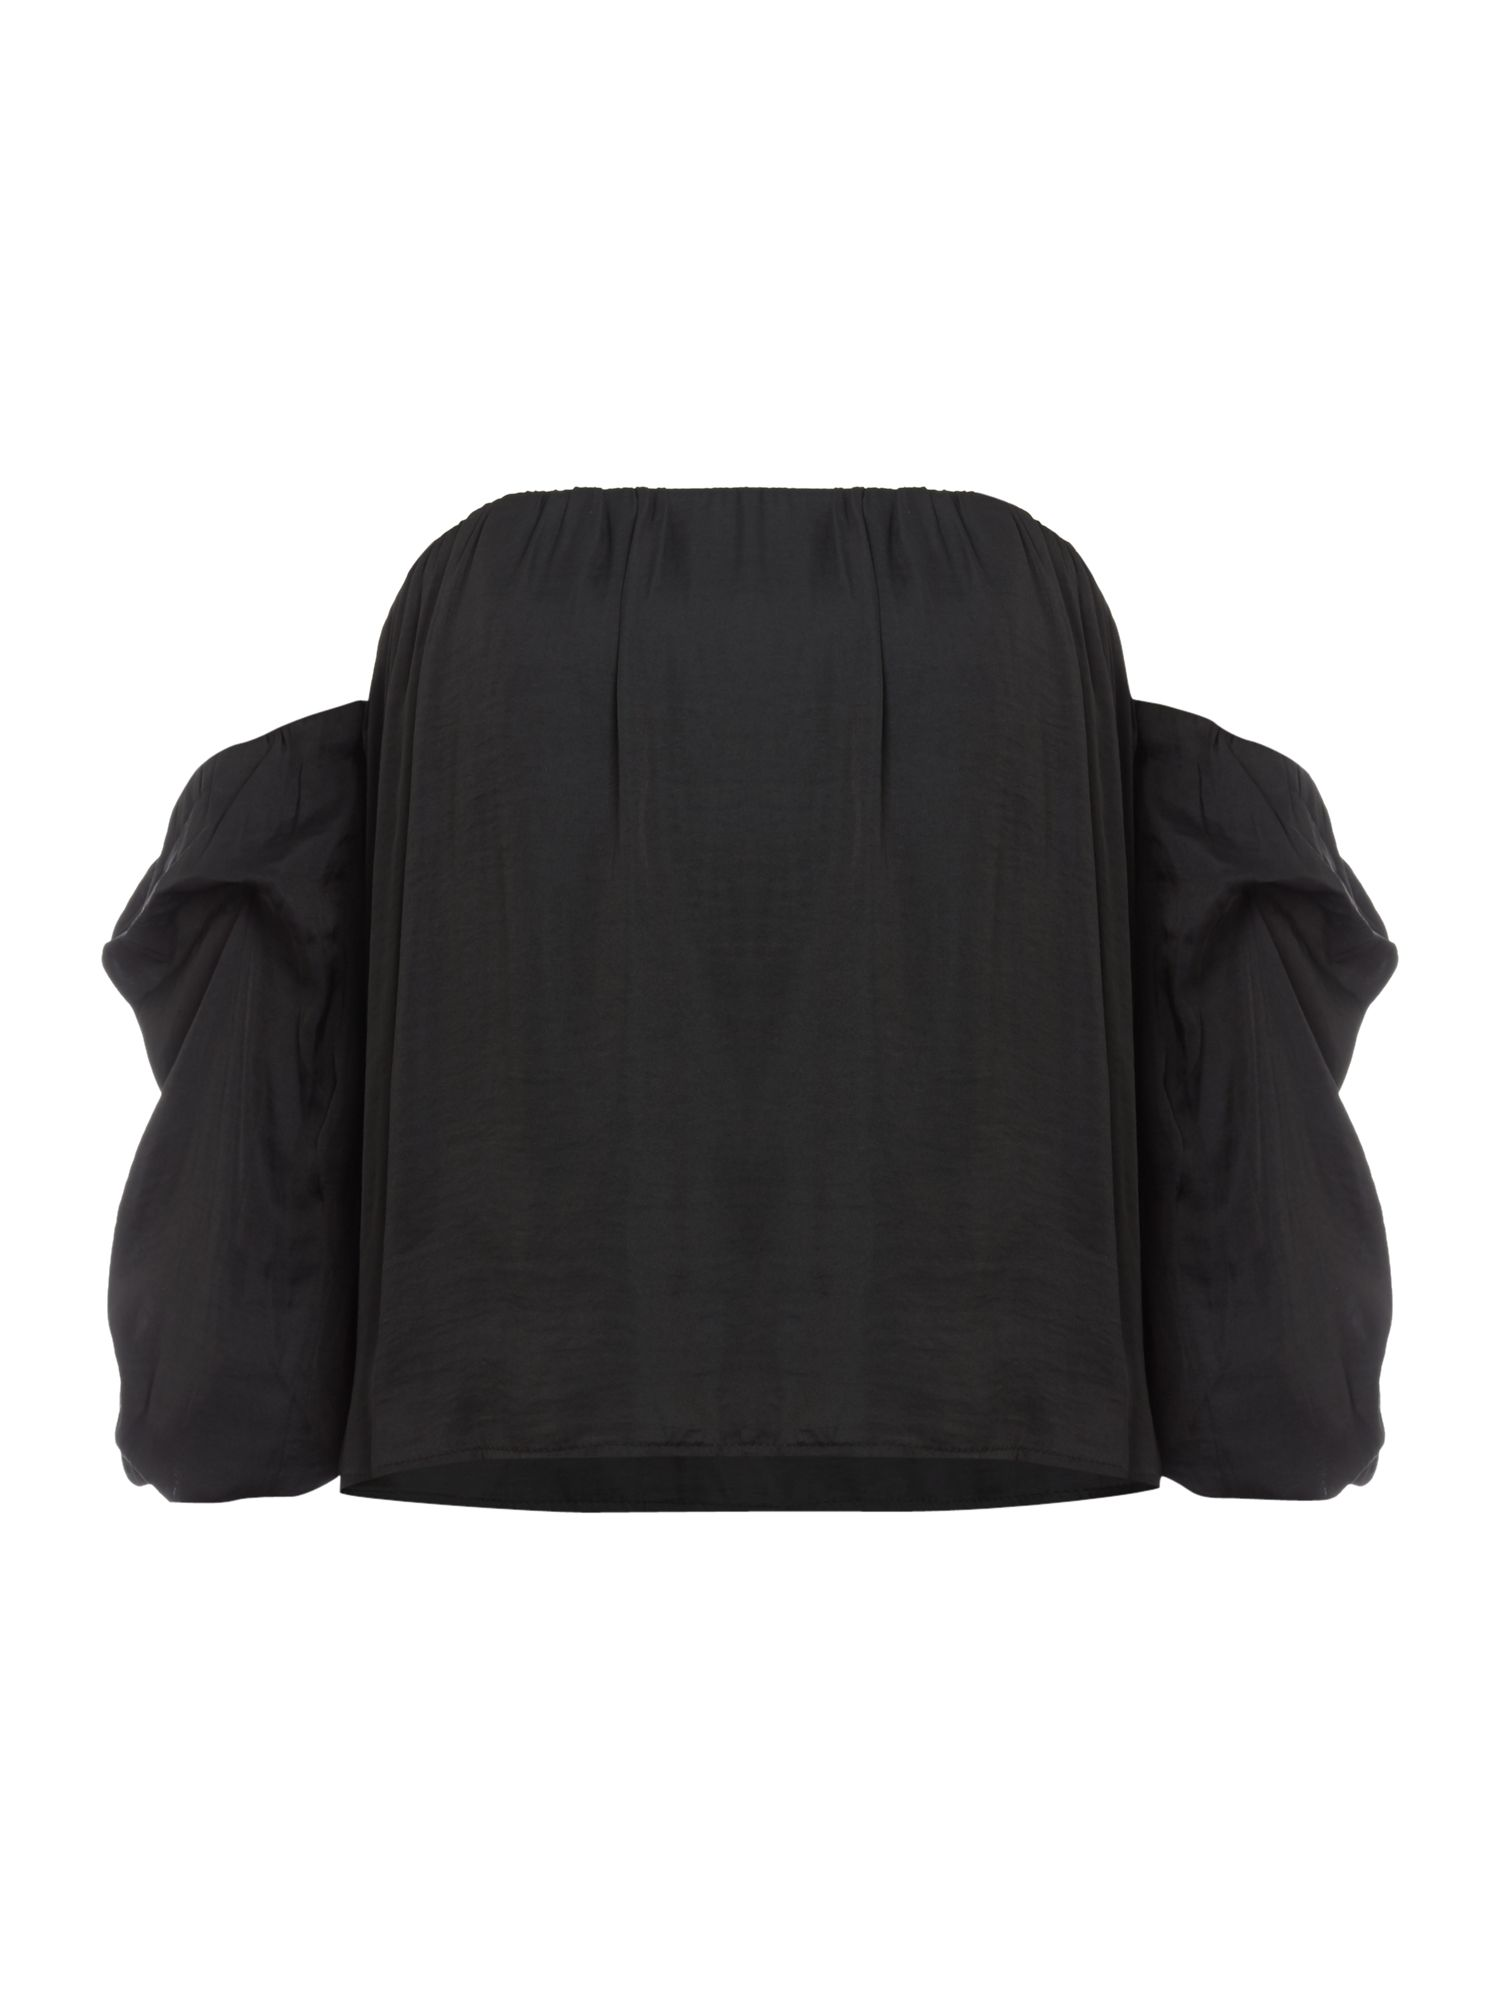 Bardot Off Shoulder Puff Sleeve Crop Top, Black